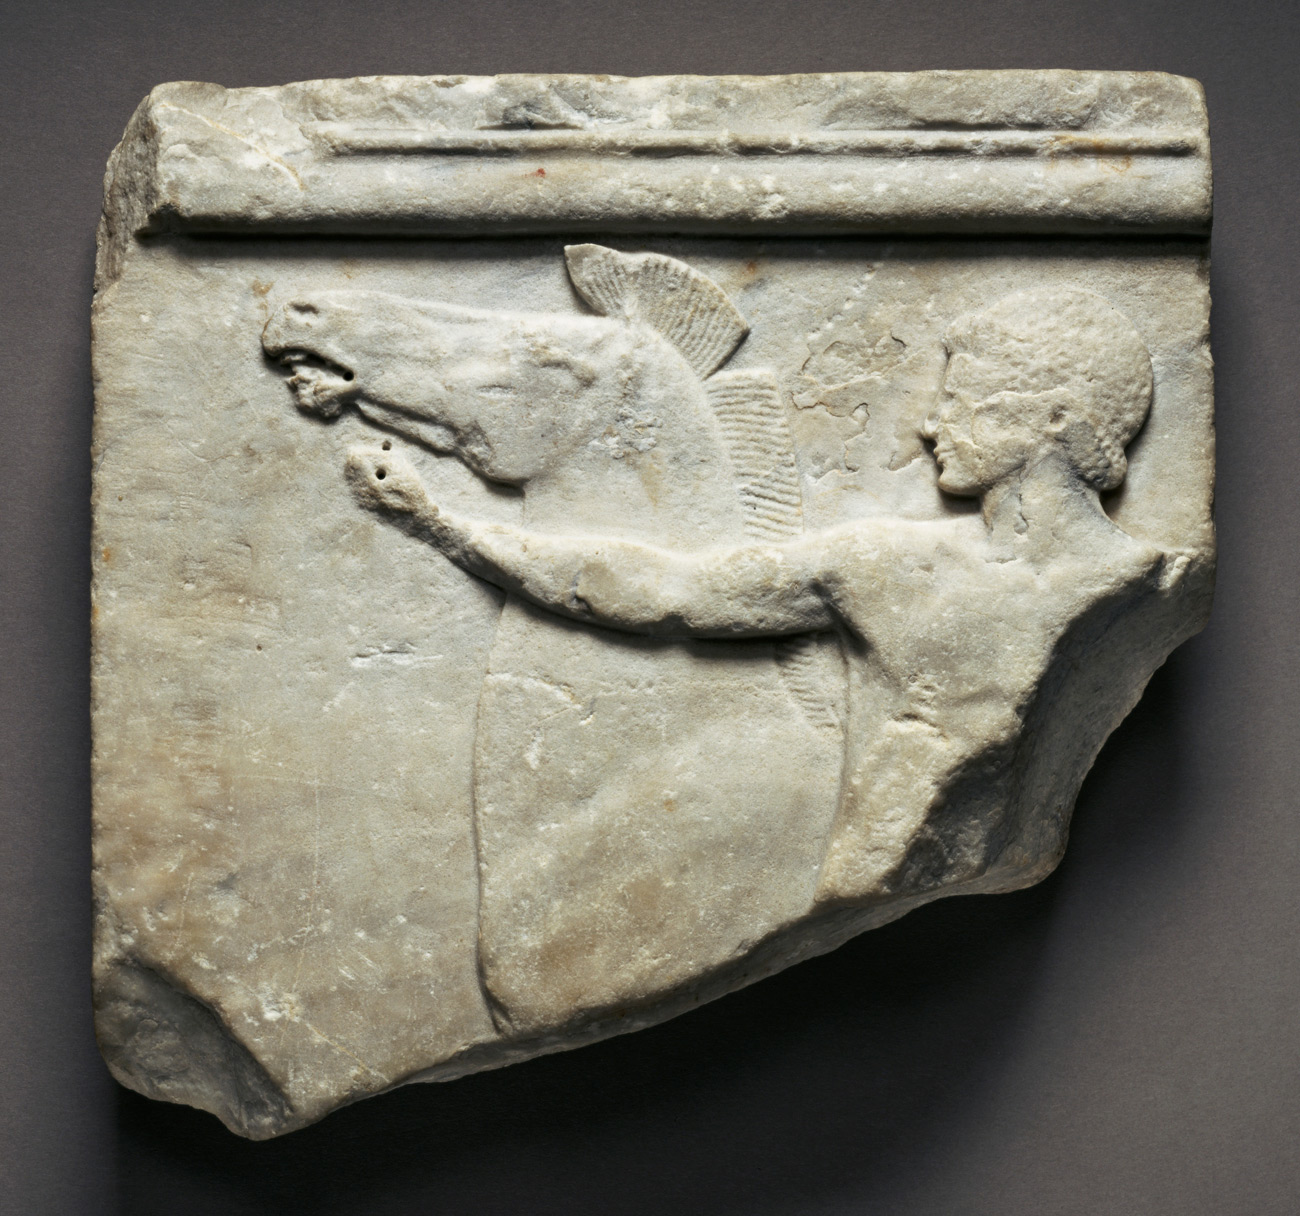 Marble fragment showing head and torso of person holding hand out to a horse's mouth